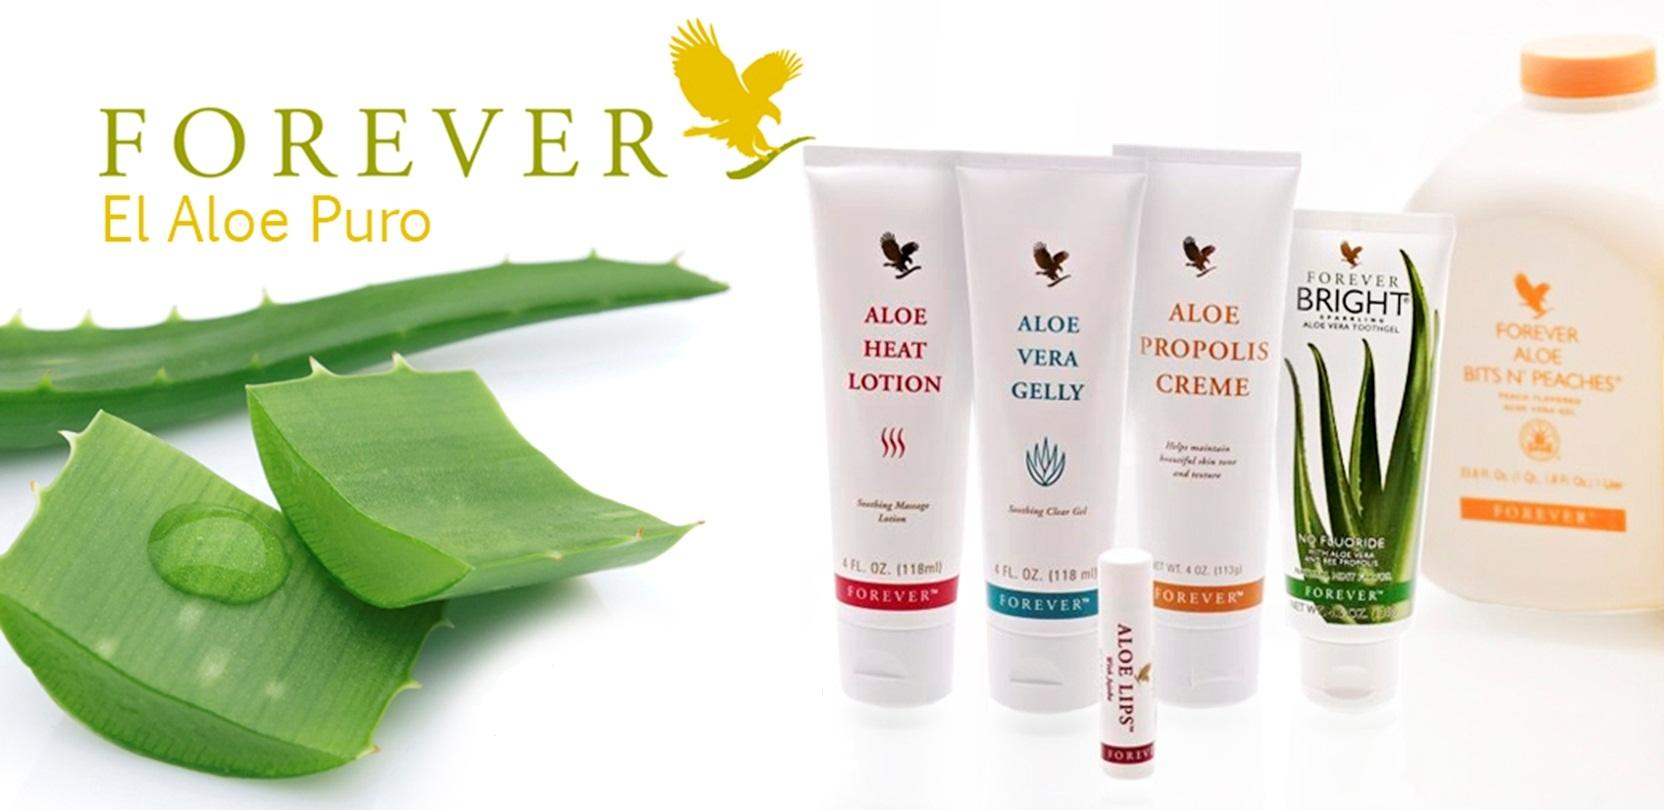 ForeverLivingProduct